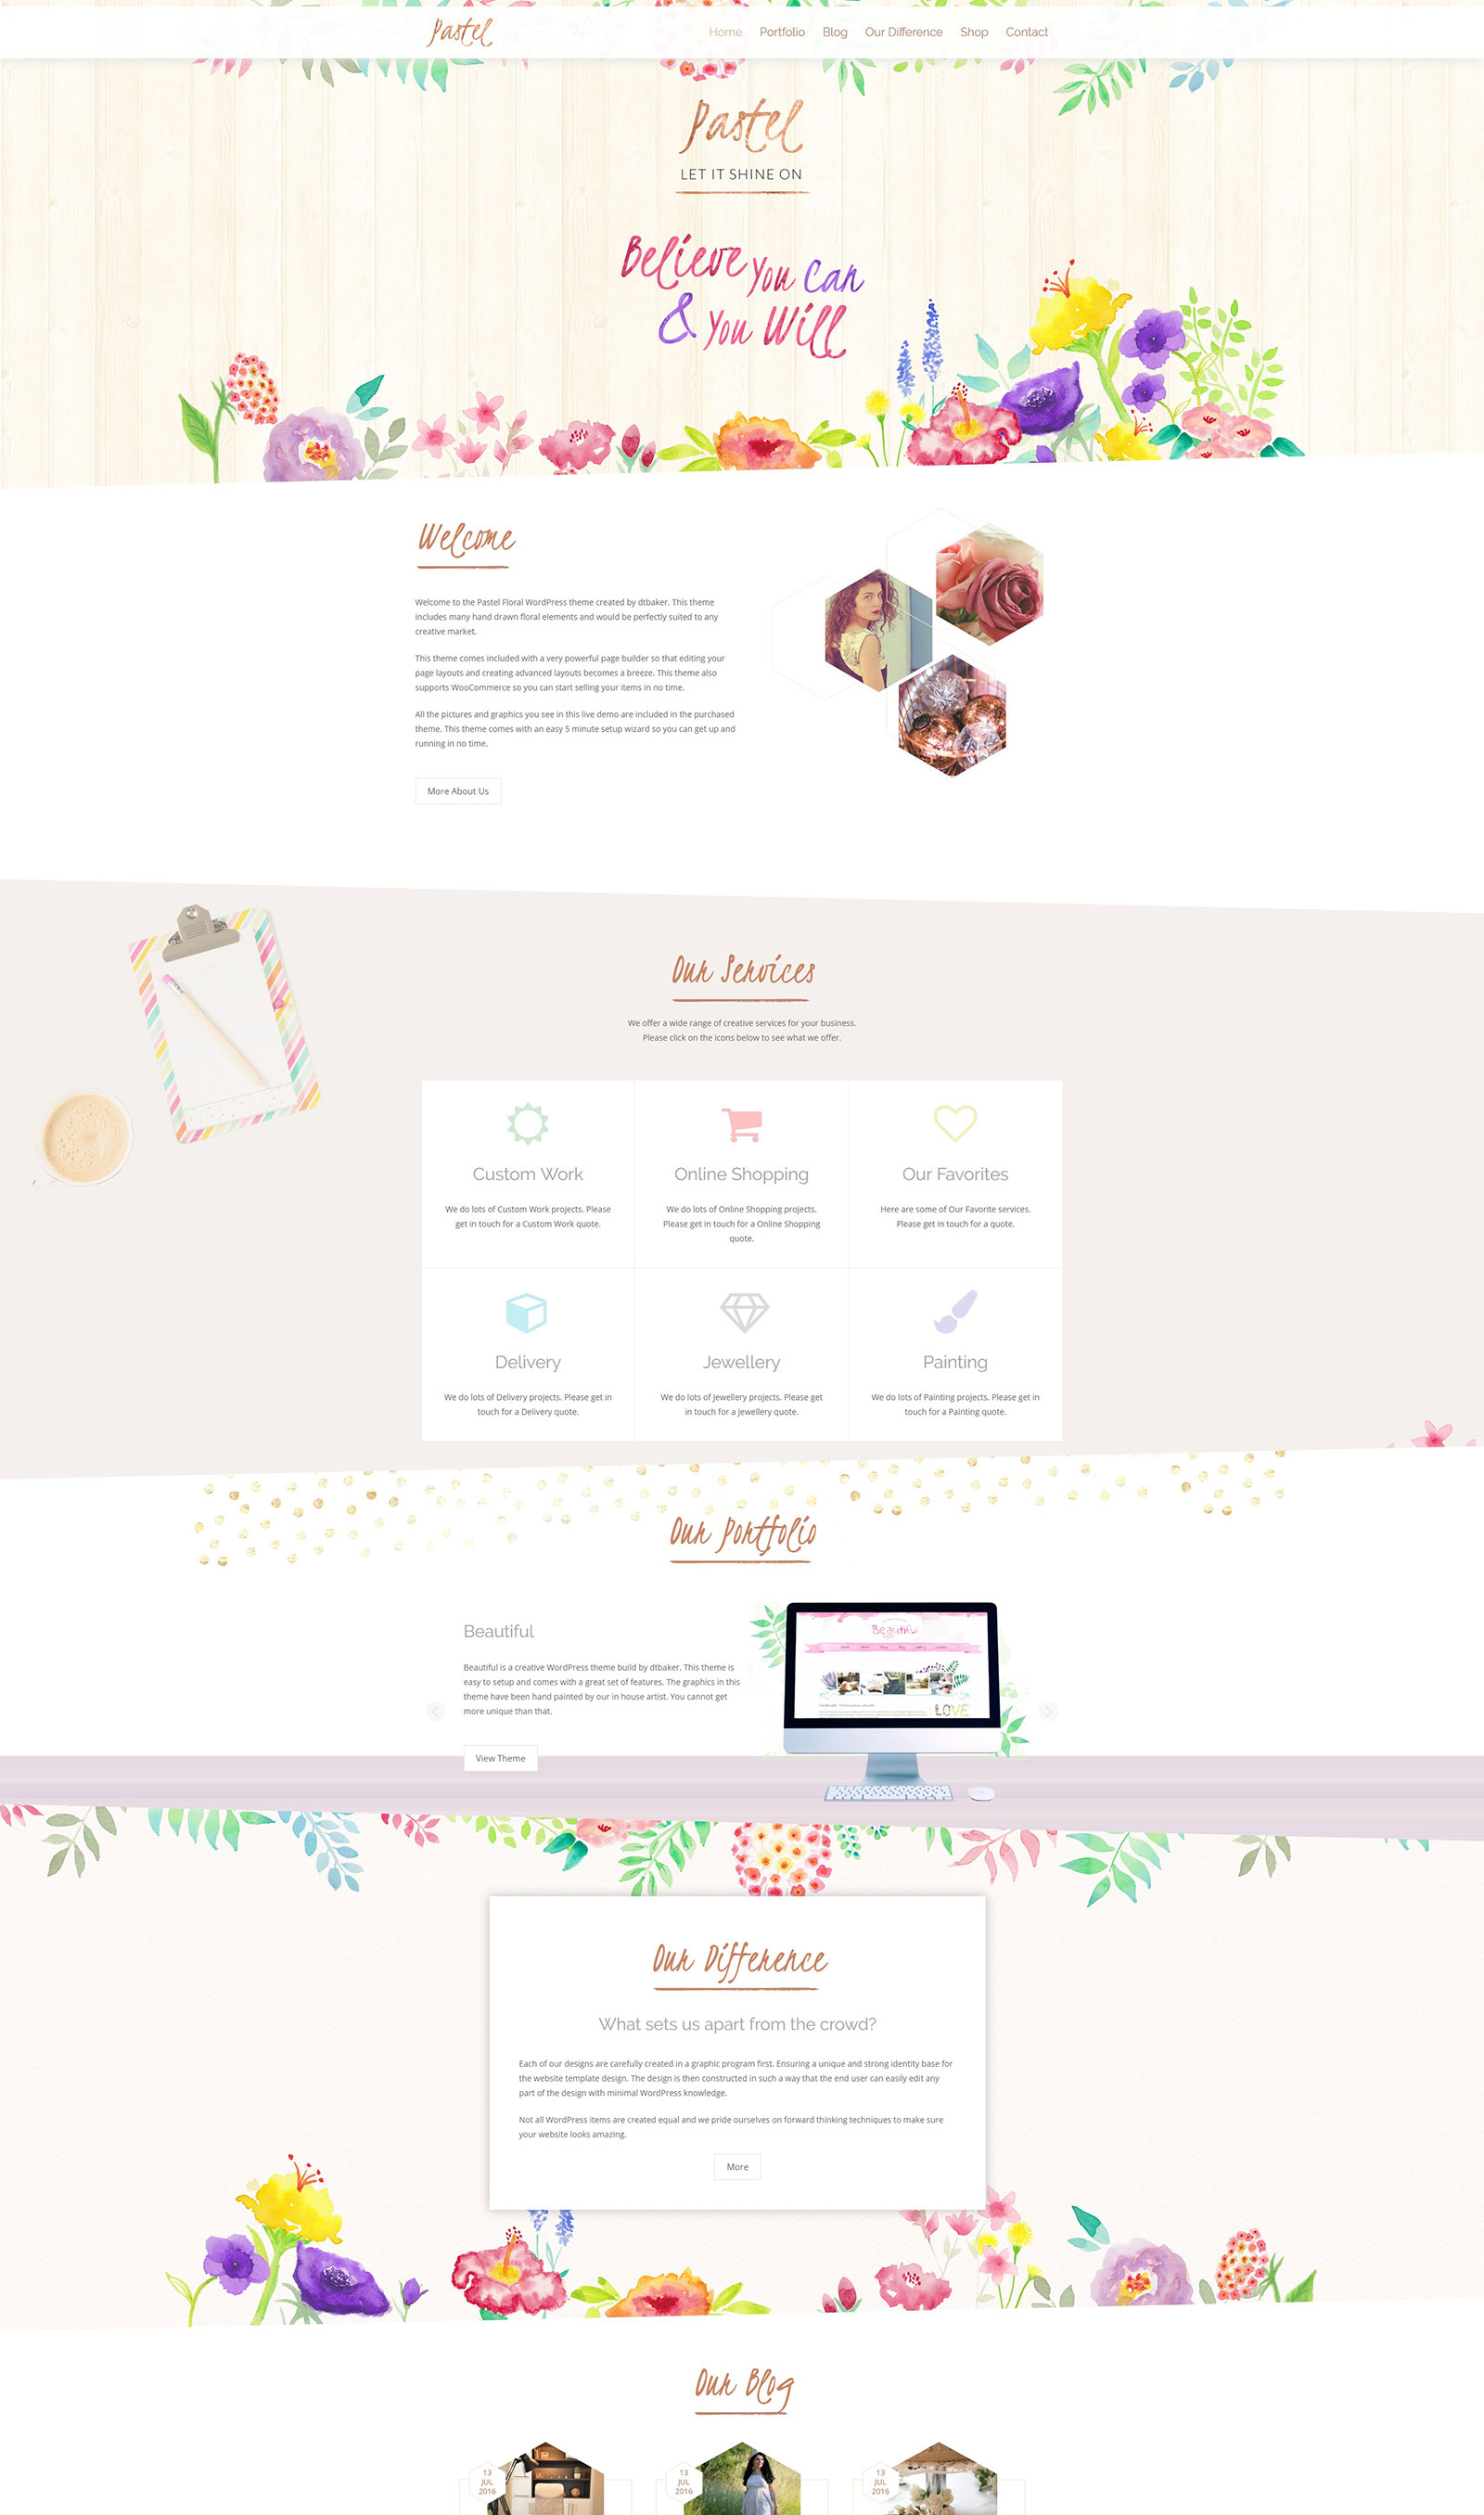 pastel-wp-theme-by-dtbaker